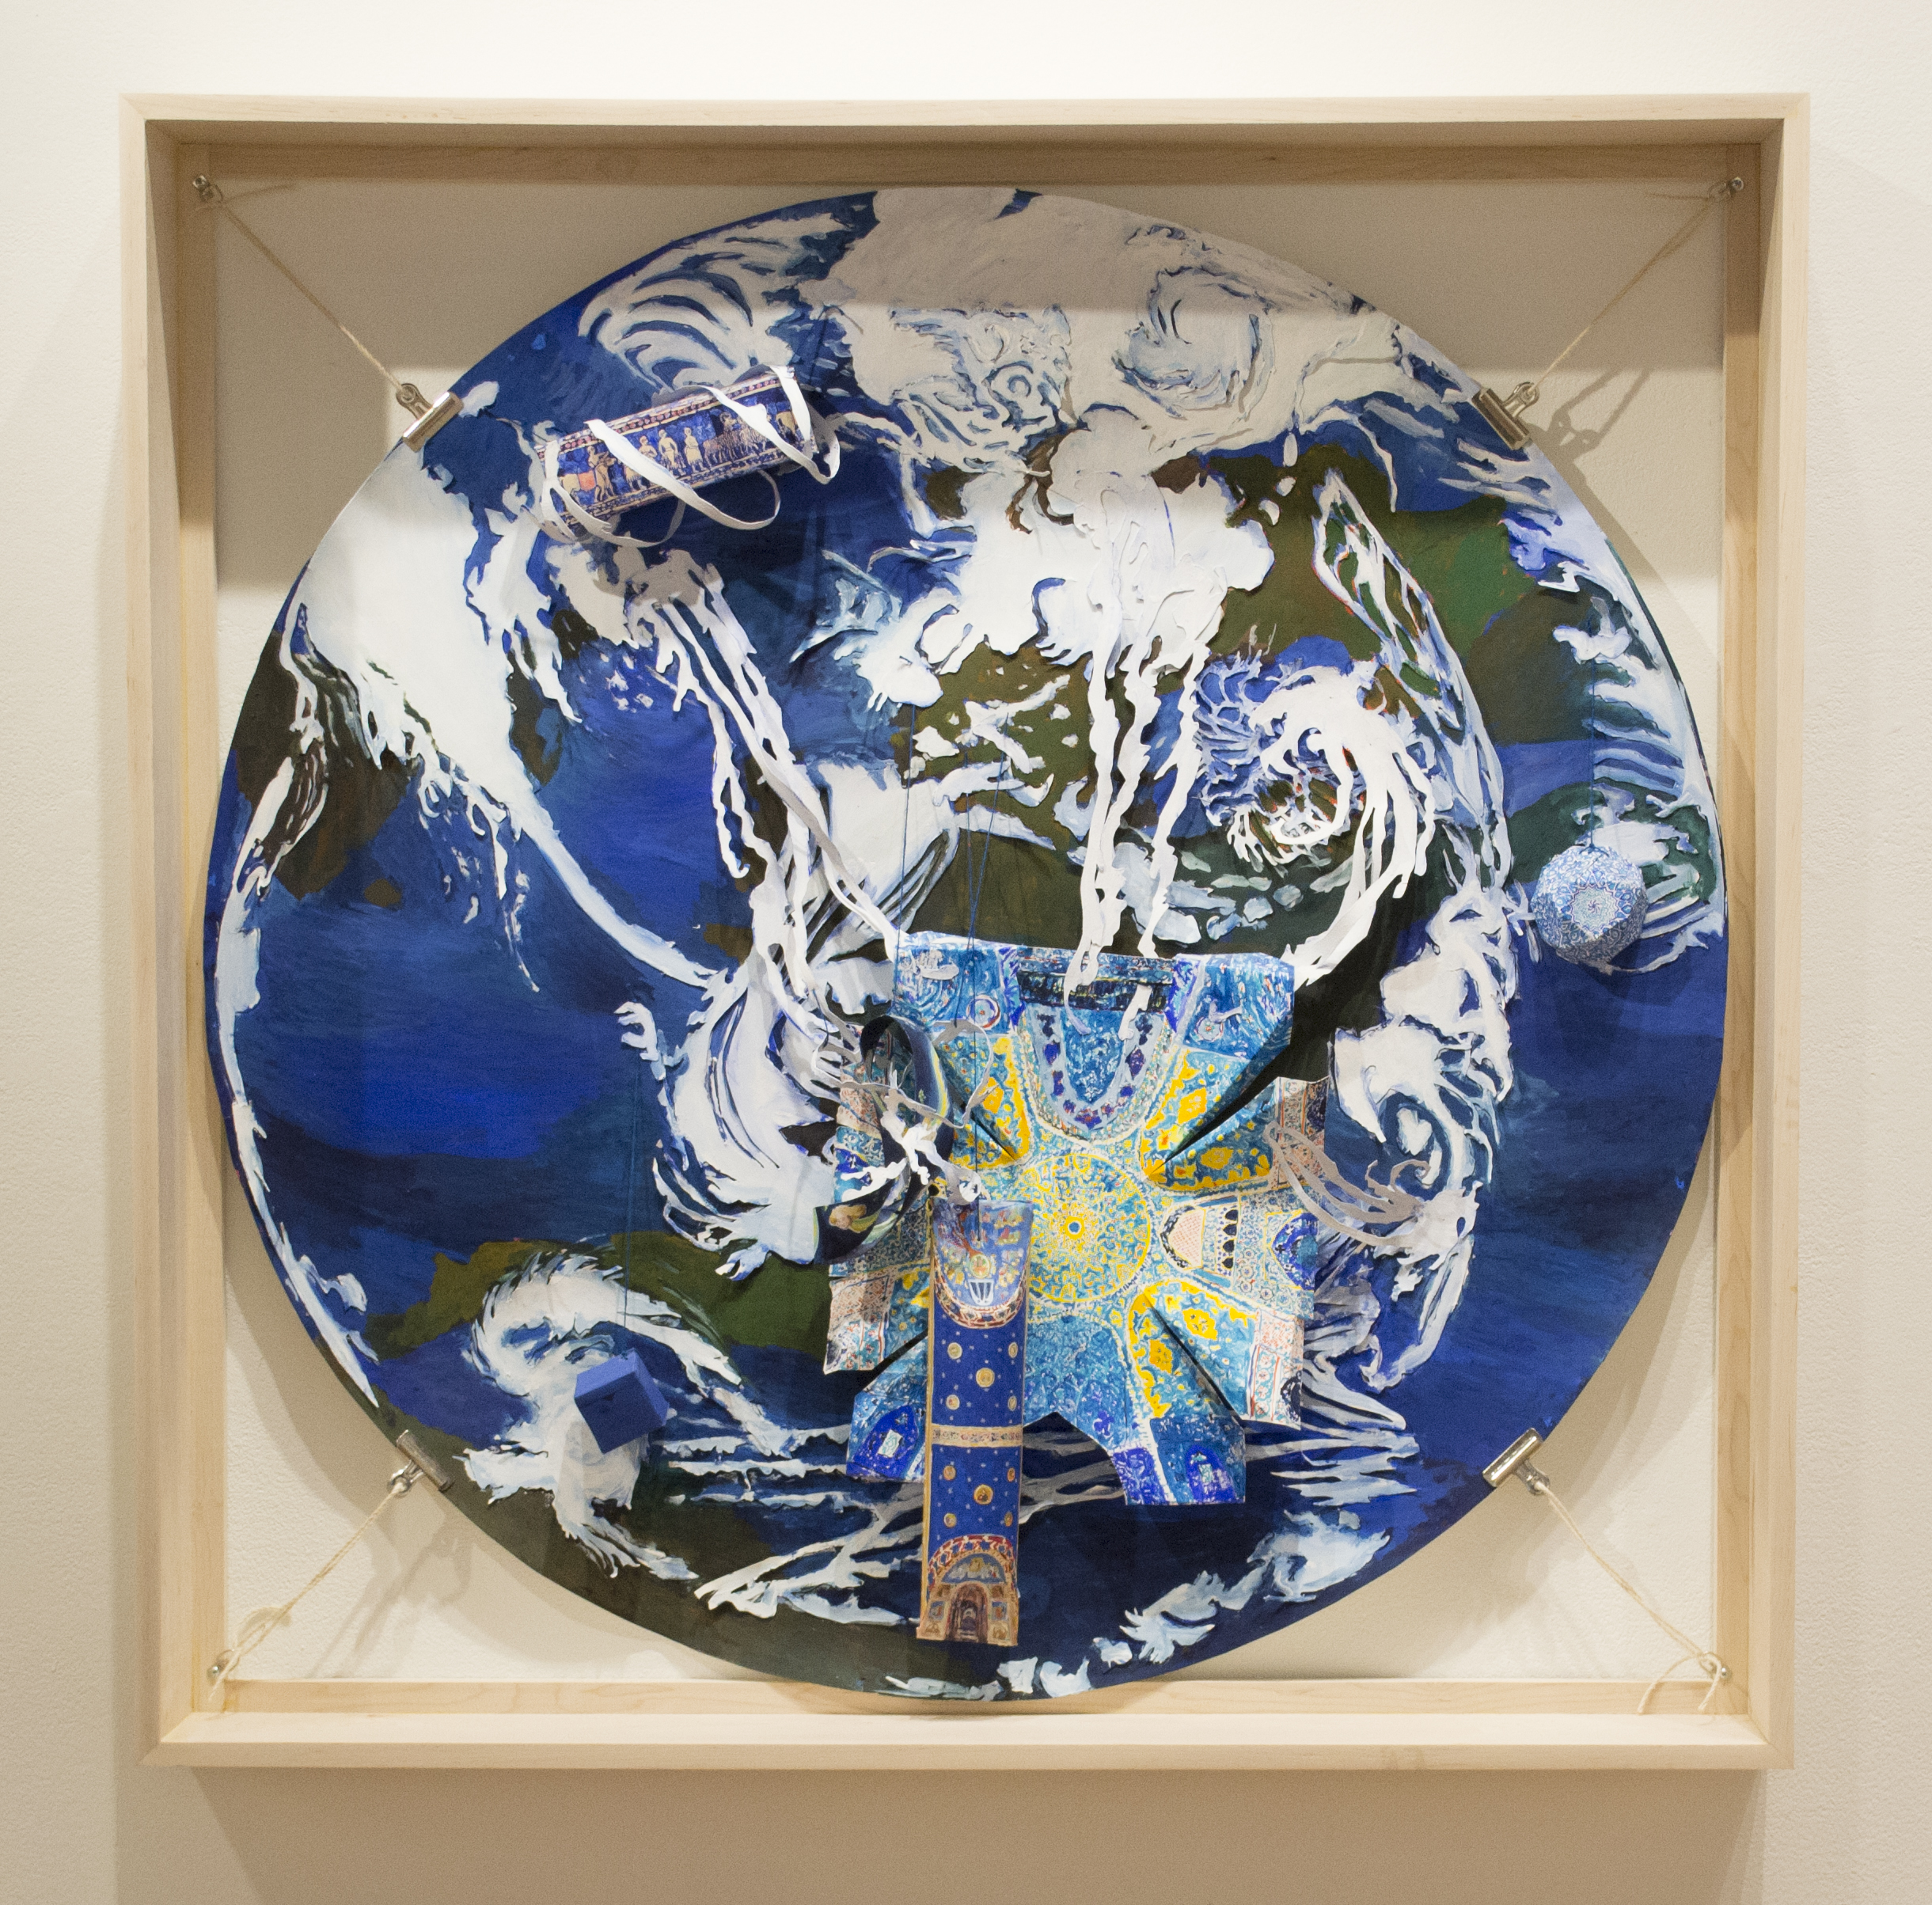 Blue World, from Temporal Embodiments at Julio Gallery, Loyola University